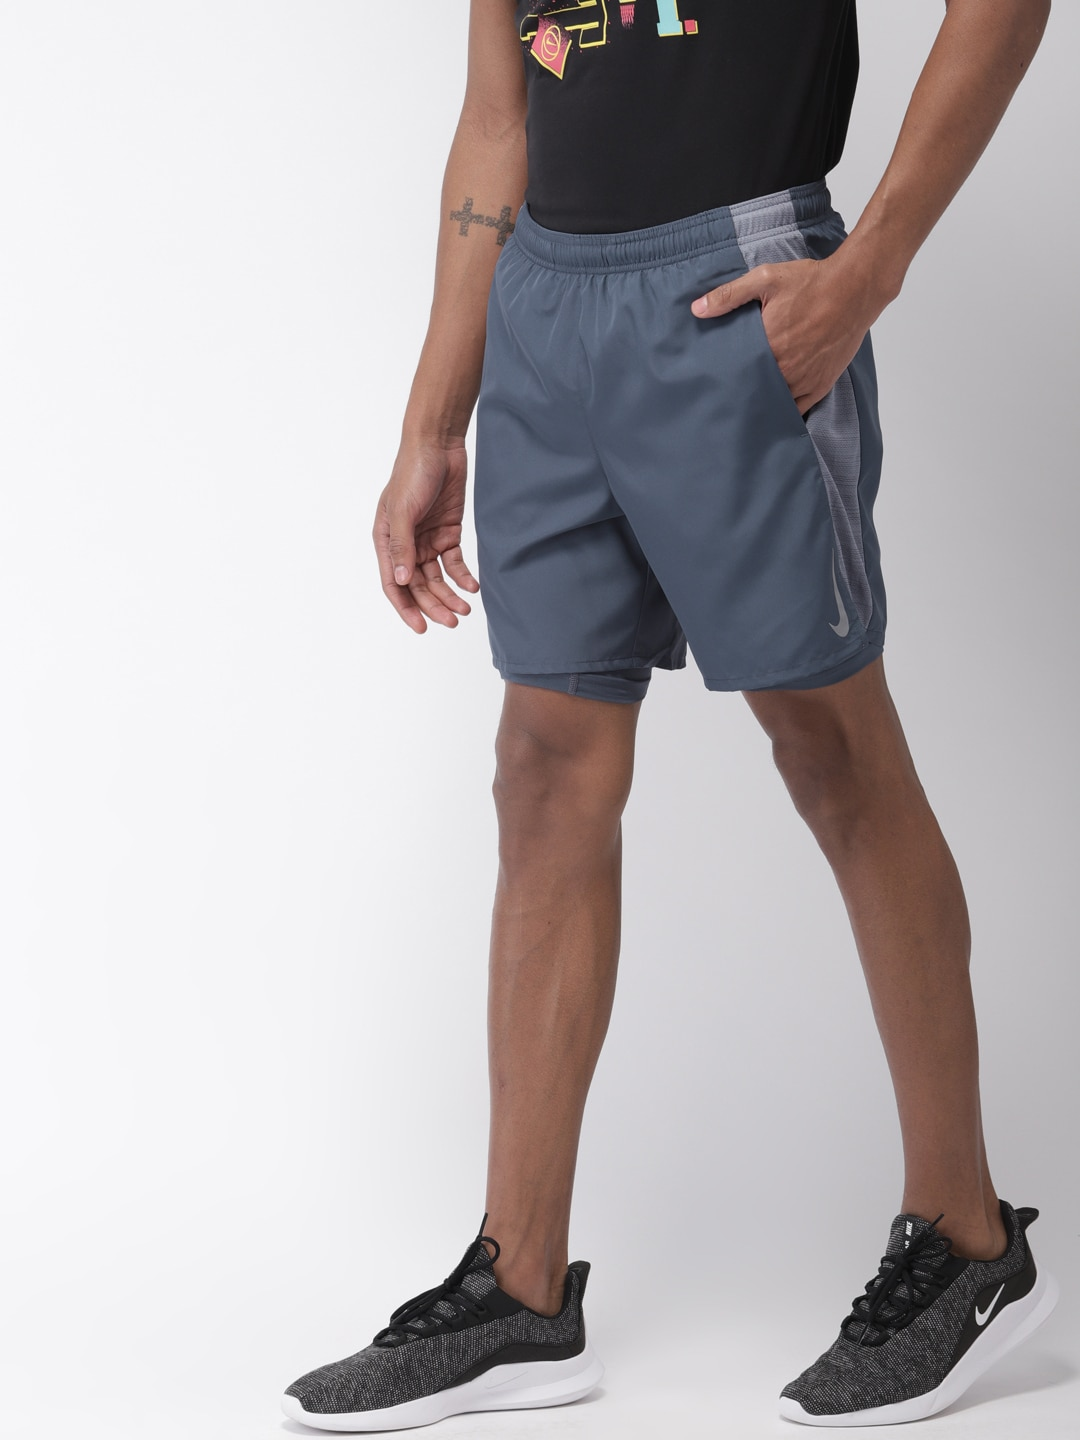 feb294e4faceb Nike Sandals Shorts - Buy Nike Sandals Shorts online in India